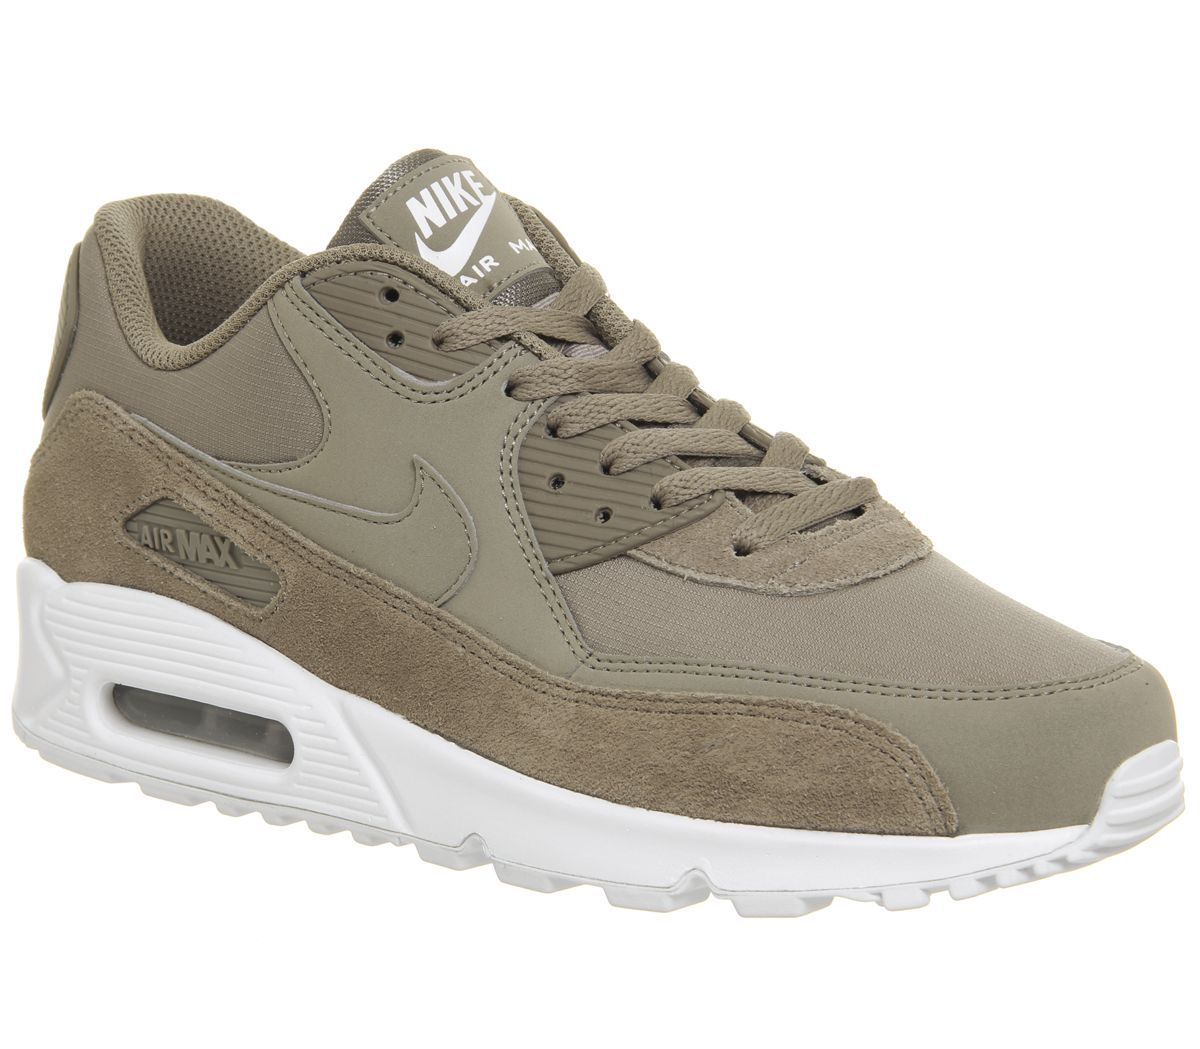 big sale 32bd8 13182 Nike Air Max 90 Trainers Sepia Stone White - His trainers